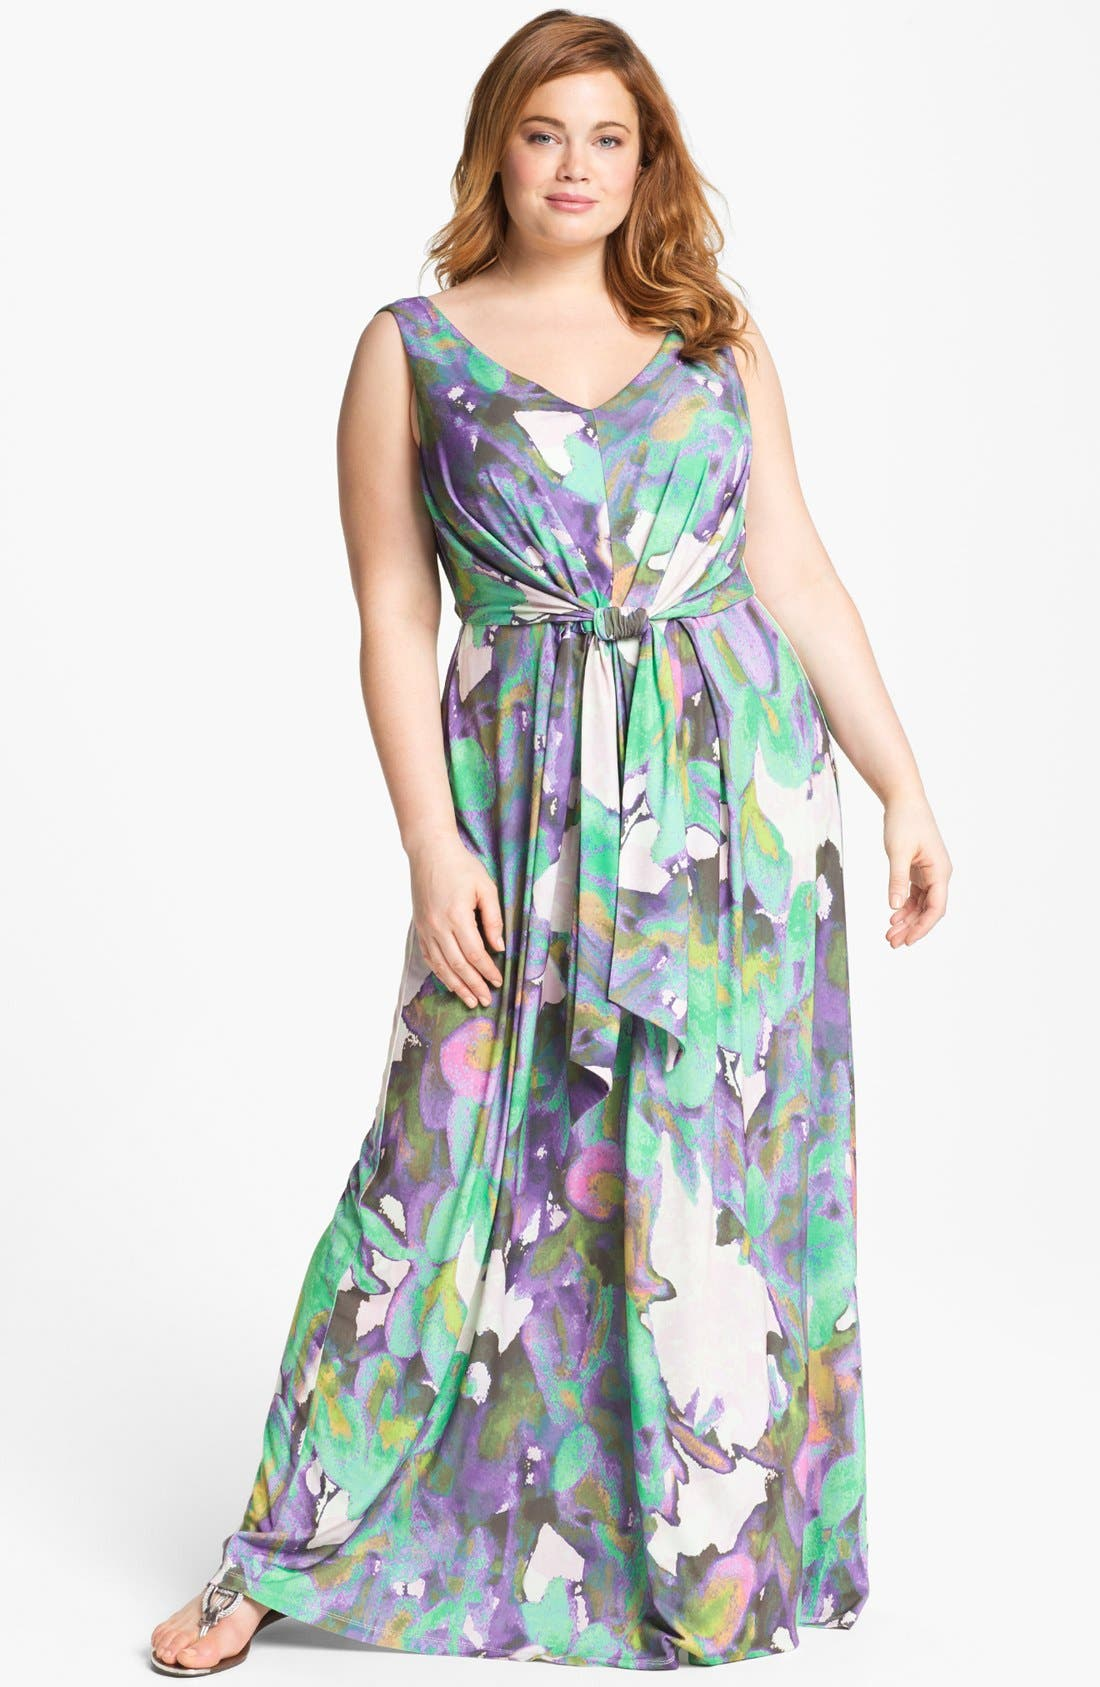 Alternate Image 1 Selected - Suzi Chin for Maggy Boutique Sleeveless Print Maxi Dress (Plus Size)